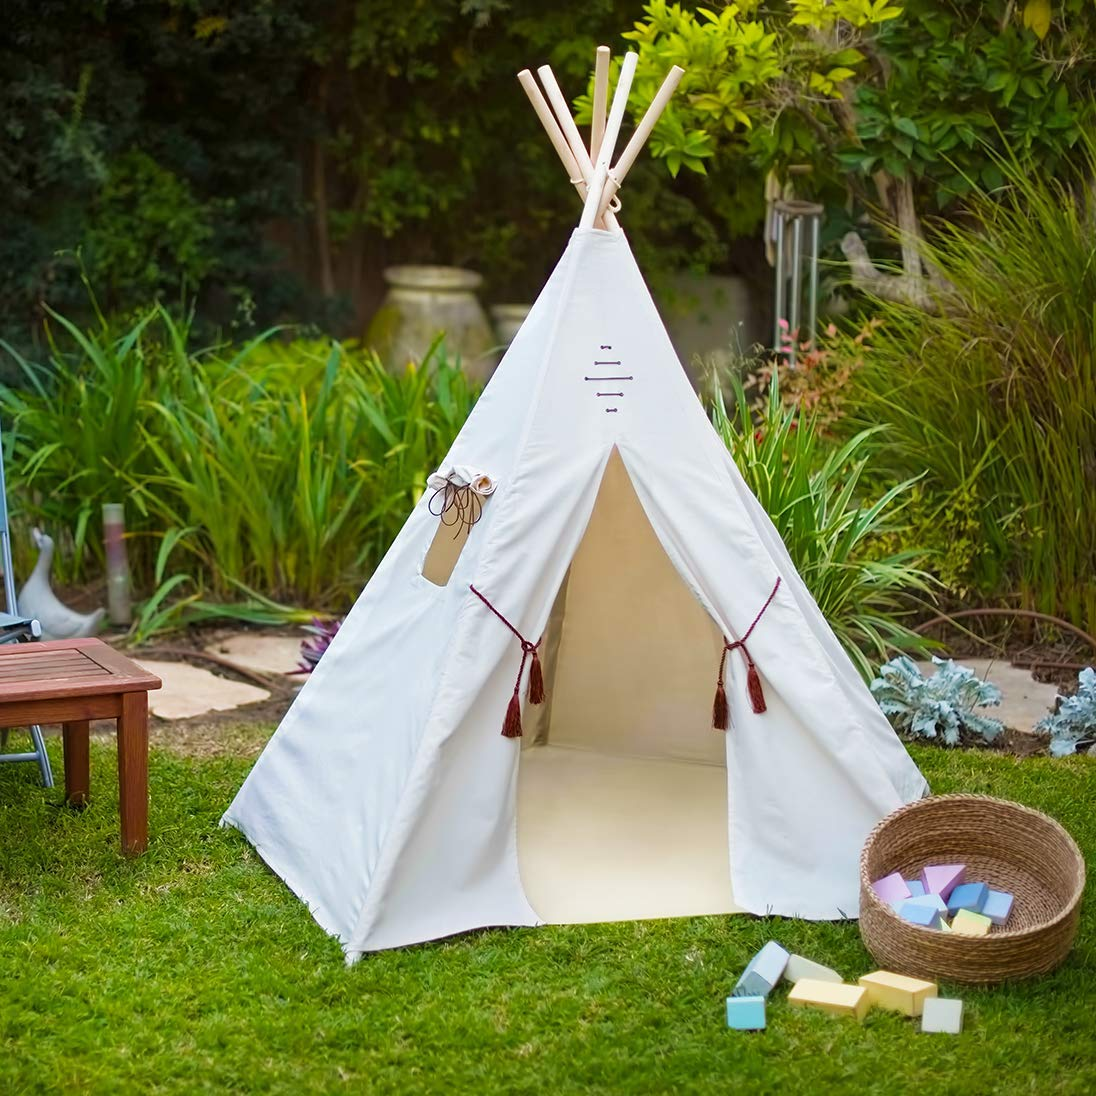 uk availability 810e9 306fd Nature's Blossom Kids Teepee Tent For Indoor and Outdoor Play. Large Tipi  with Floor, 5 Poles, Window, Carrying Bag. Pentagon Shaped, Portable Kids  TP ...